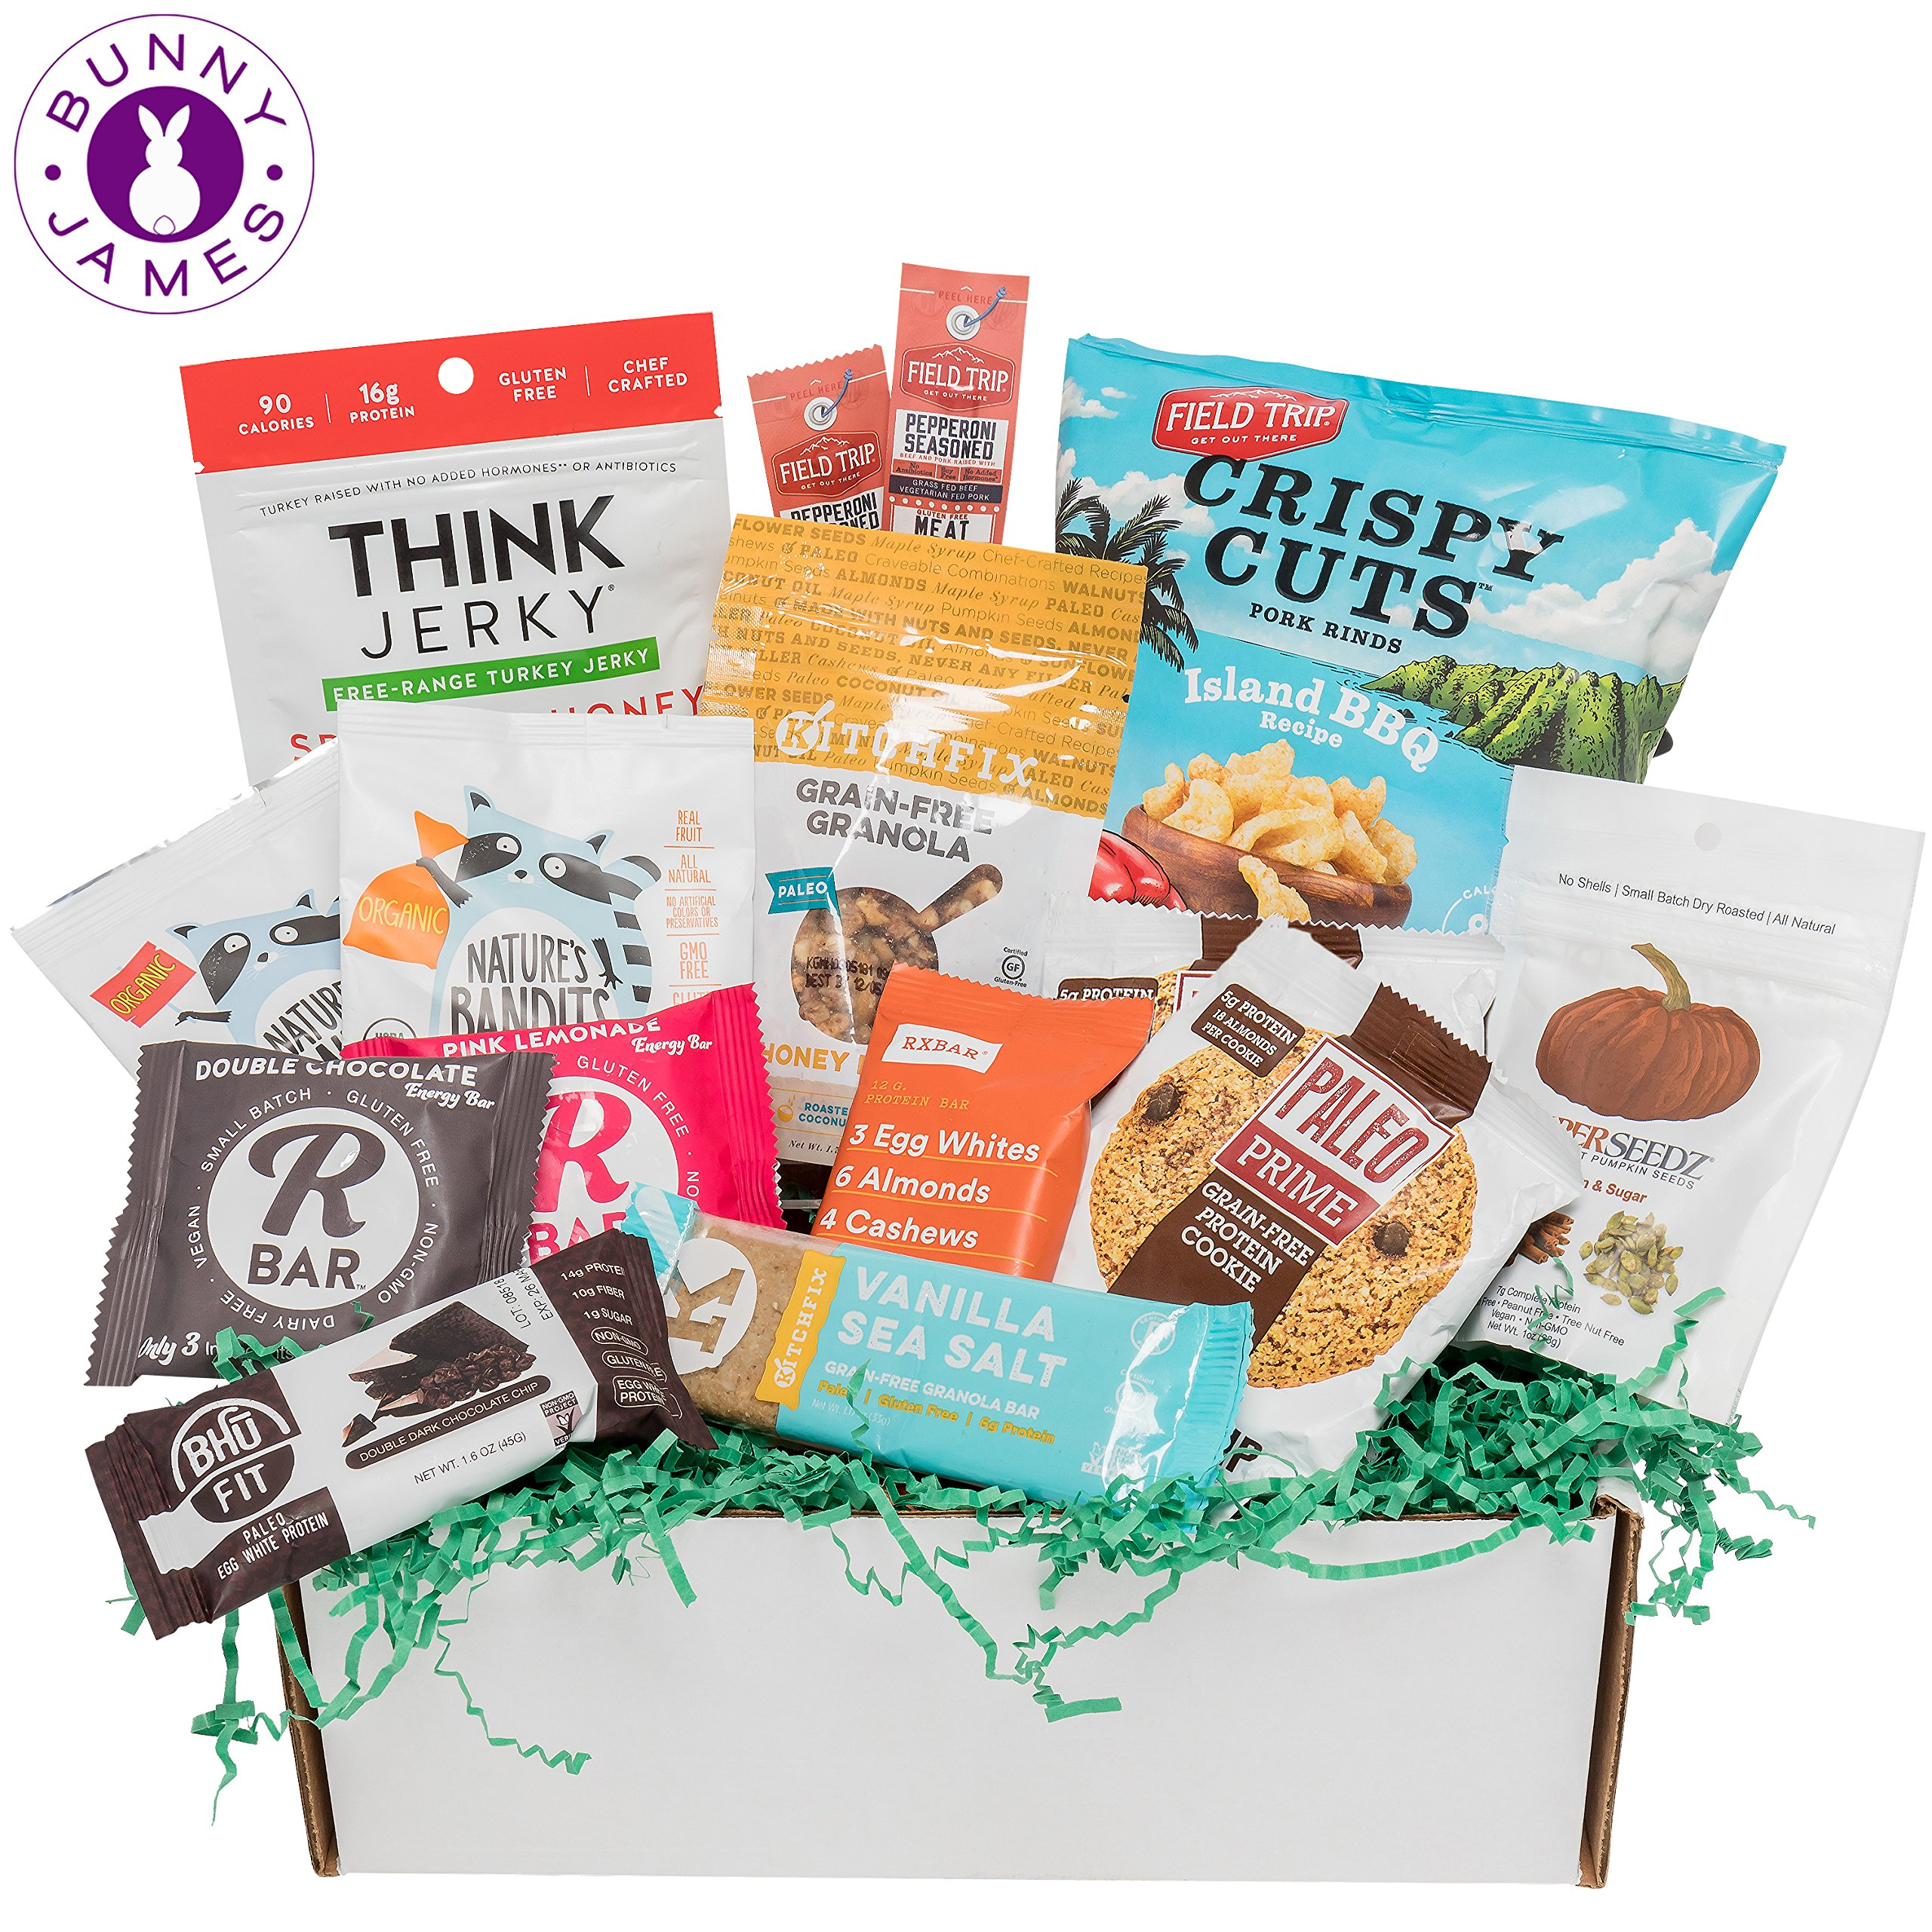 PALEO Diet Snacks Gift Basket: Mix of Whole Foods Protein Bars, Grain Free Granola, Cookies, Jerky Meat Sticks, Fruit & Nut Snacks Sampler Box